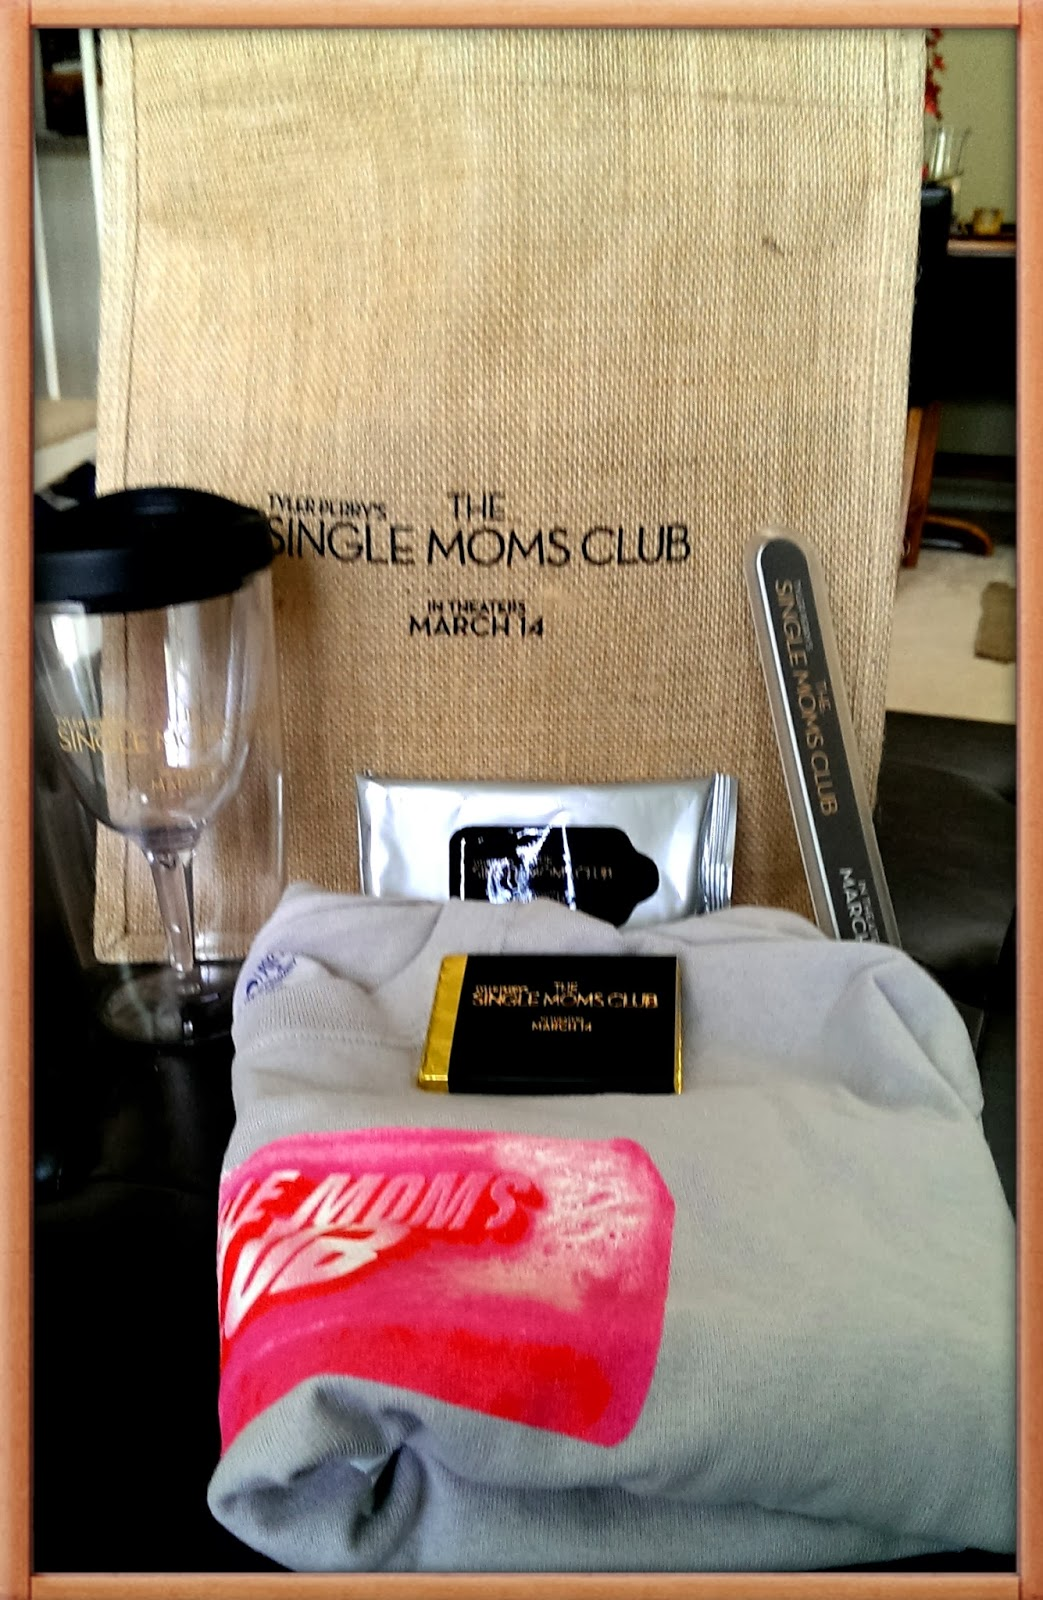 The+Single+Moms+Club+gift+pack The Single Moms Club Will Be In Theaters March 14, 2014 - Single Moms Club Trailer